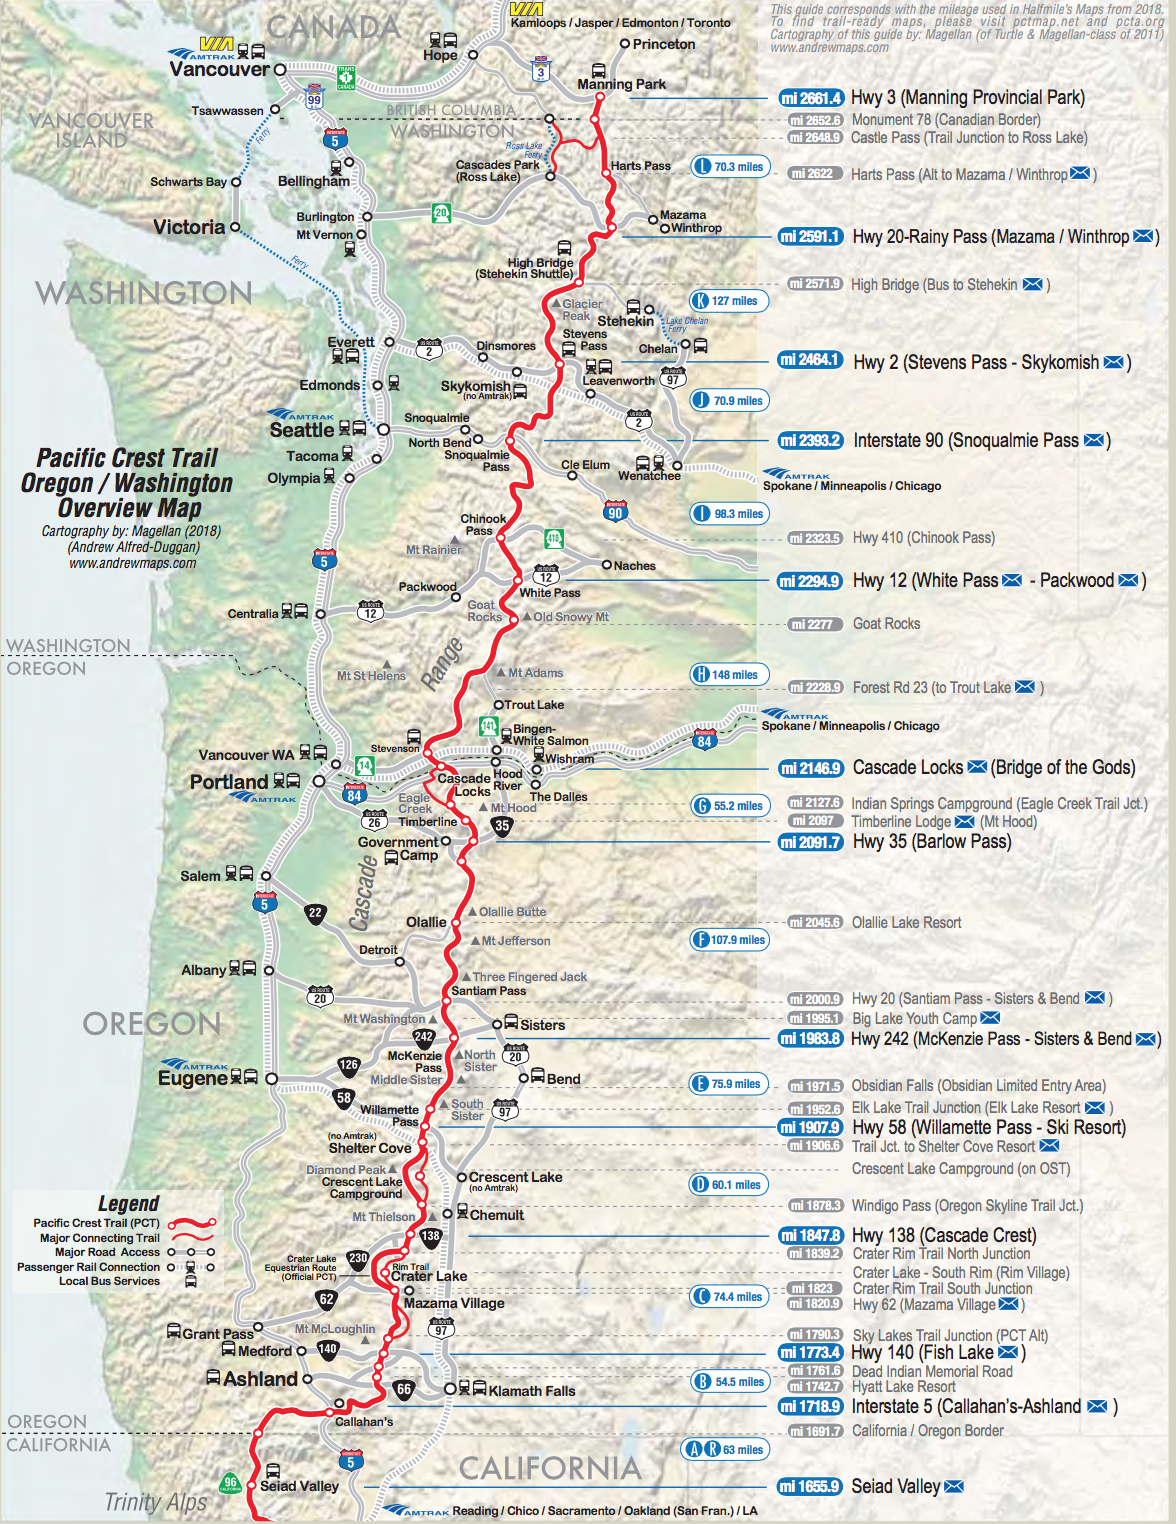 Pacific Crest Trail Washington and Oregon Overview Map